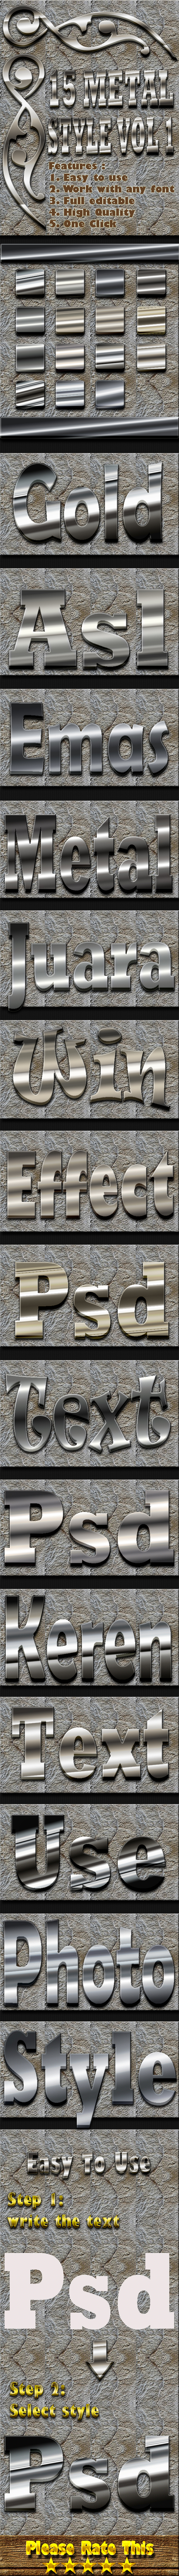 15 Metal Text Effect Style Vol 1 - Styles Photoshop